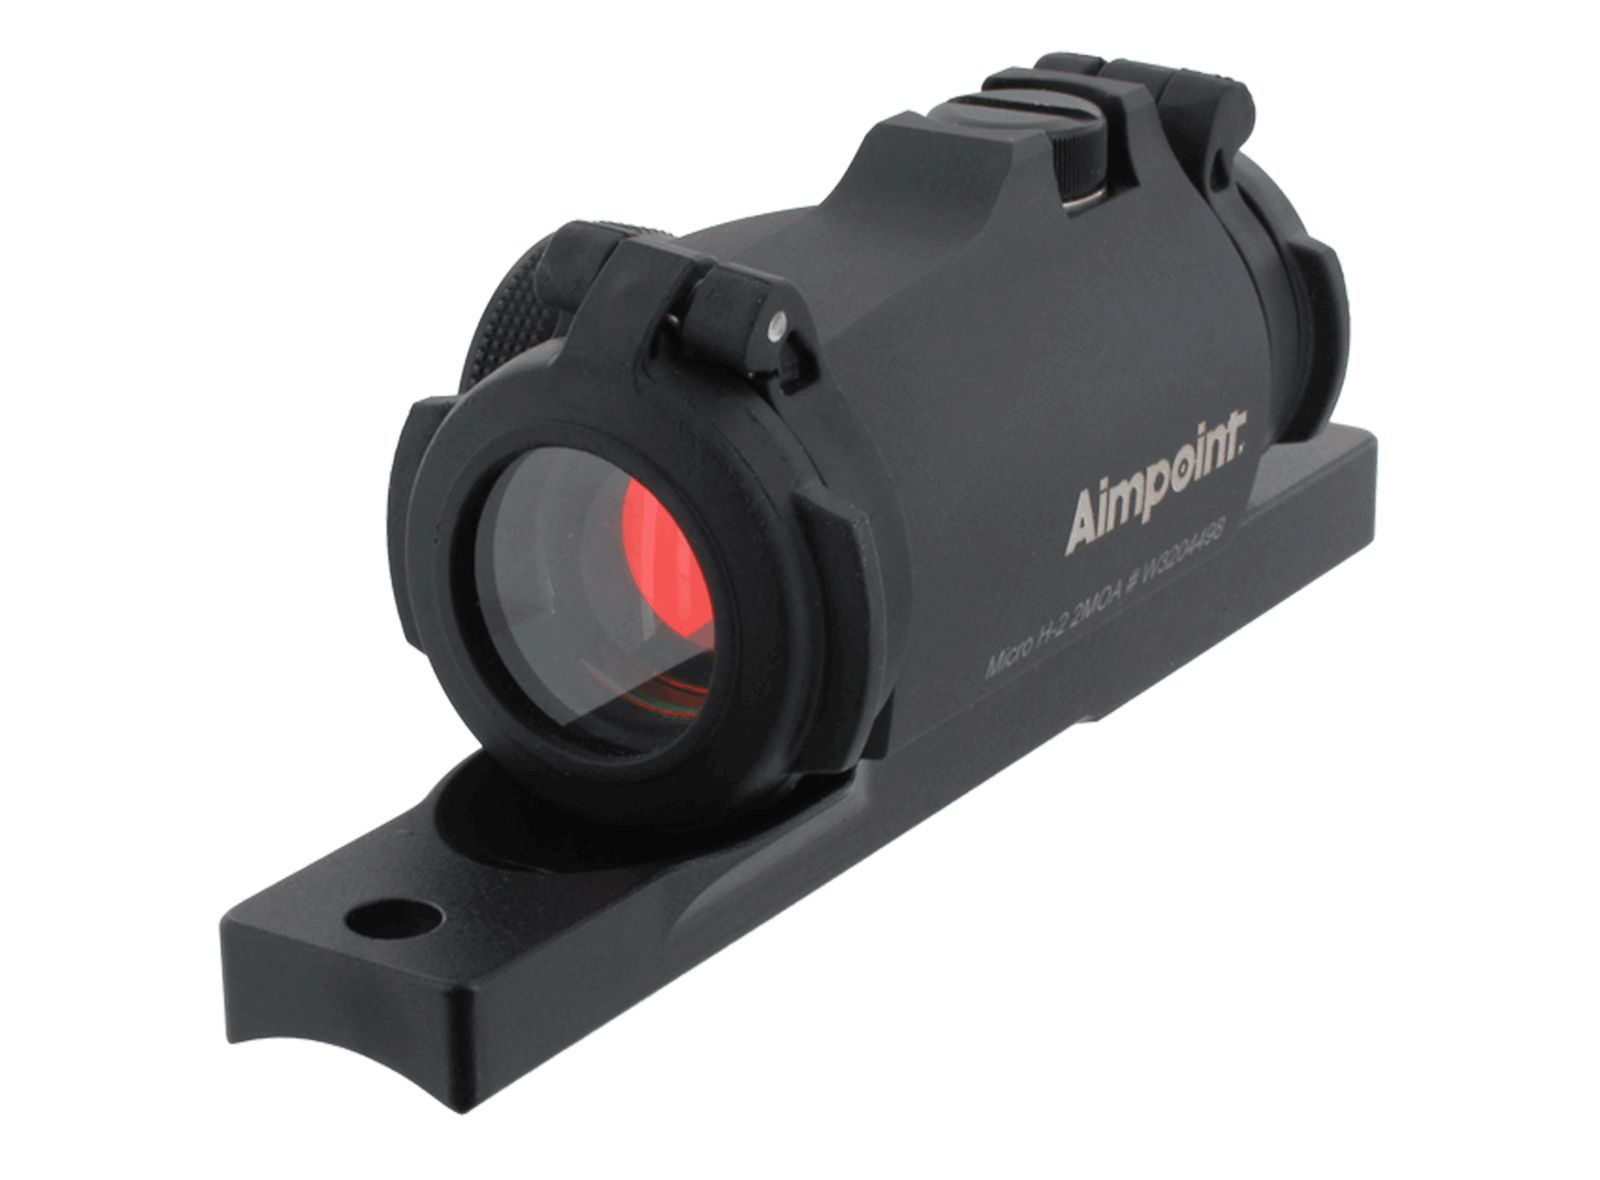 Viseur point rouge AIMPOINT MICRO H2 + embase extra bas fusil semi auto